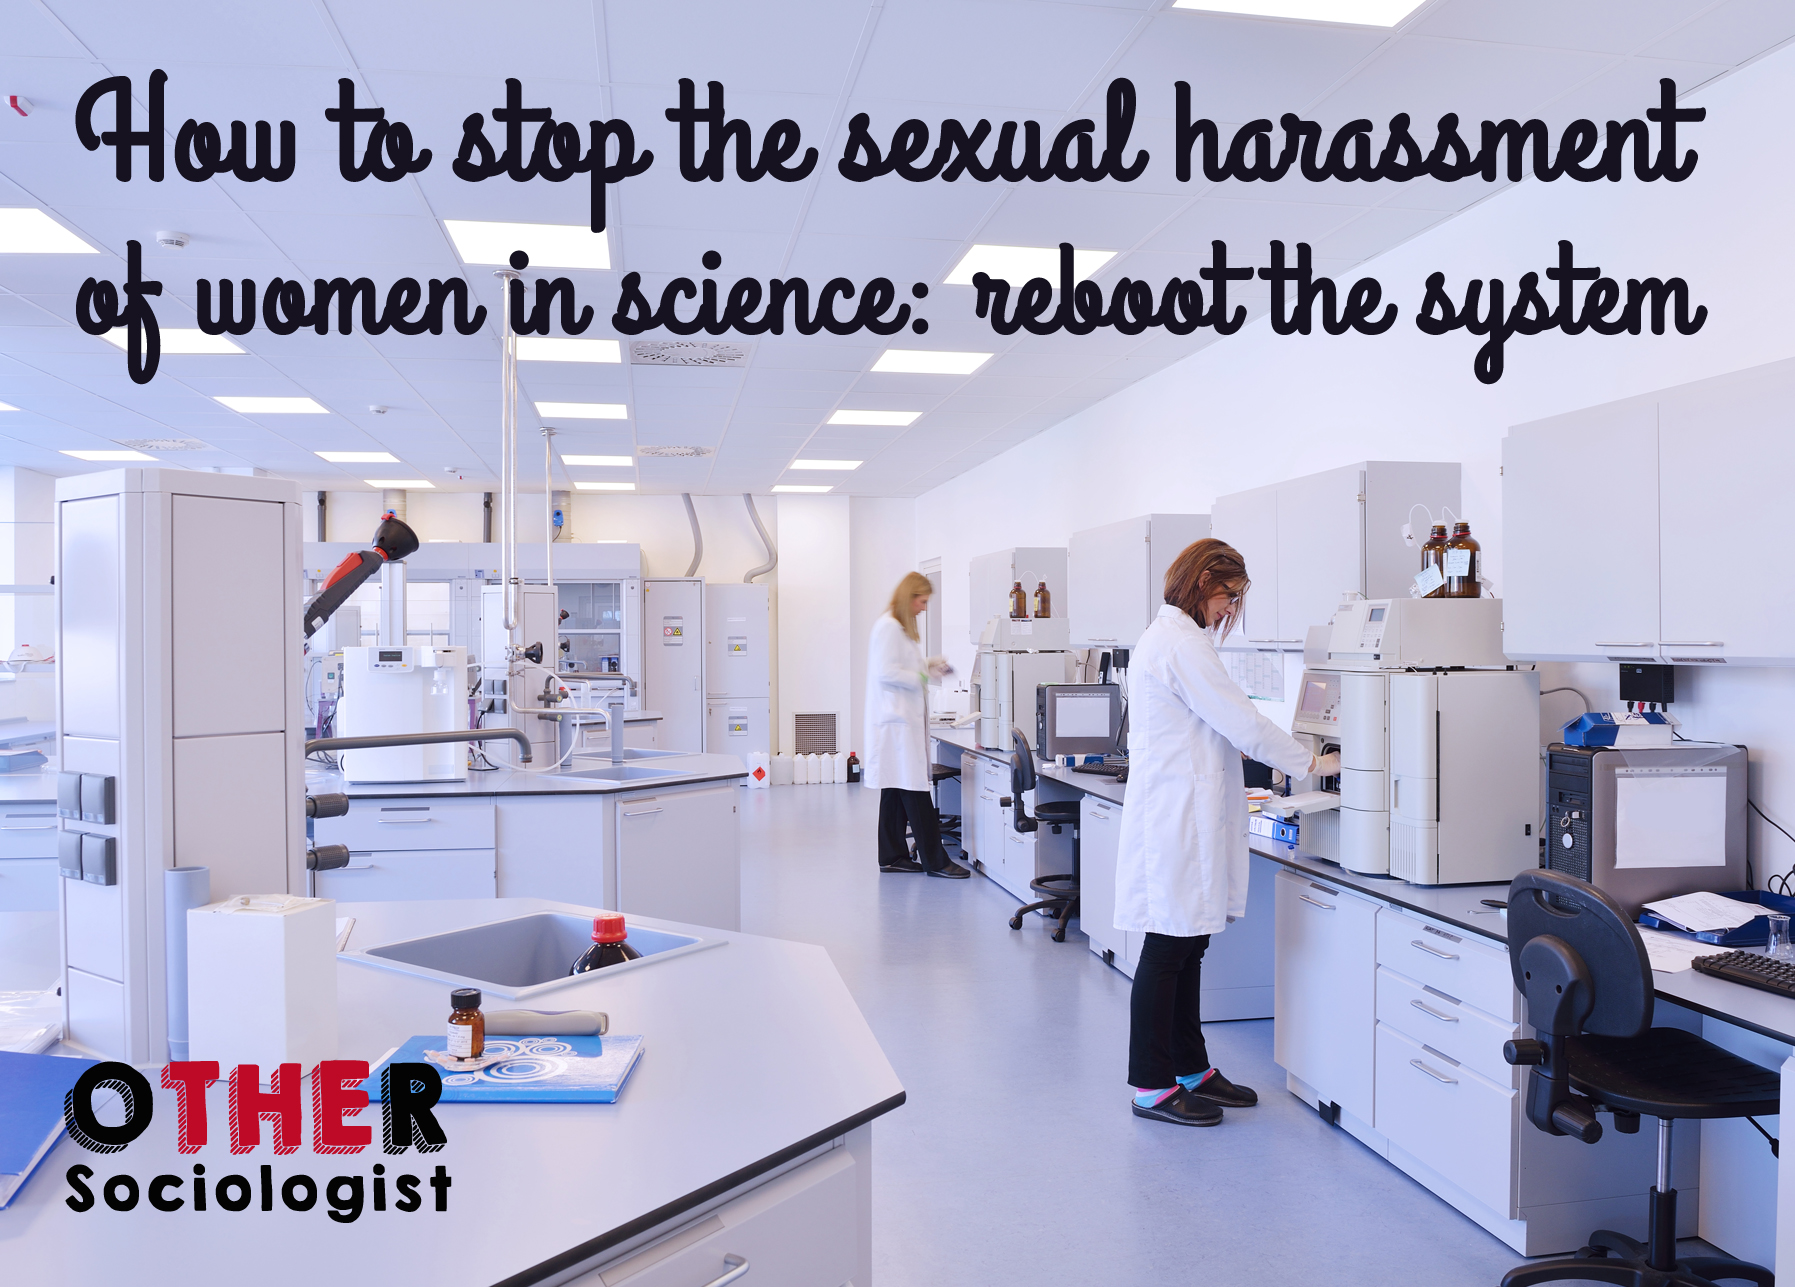 How to stop the sexual harassment of women in science